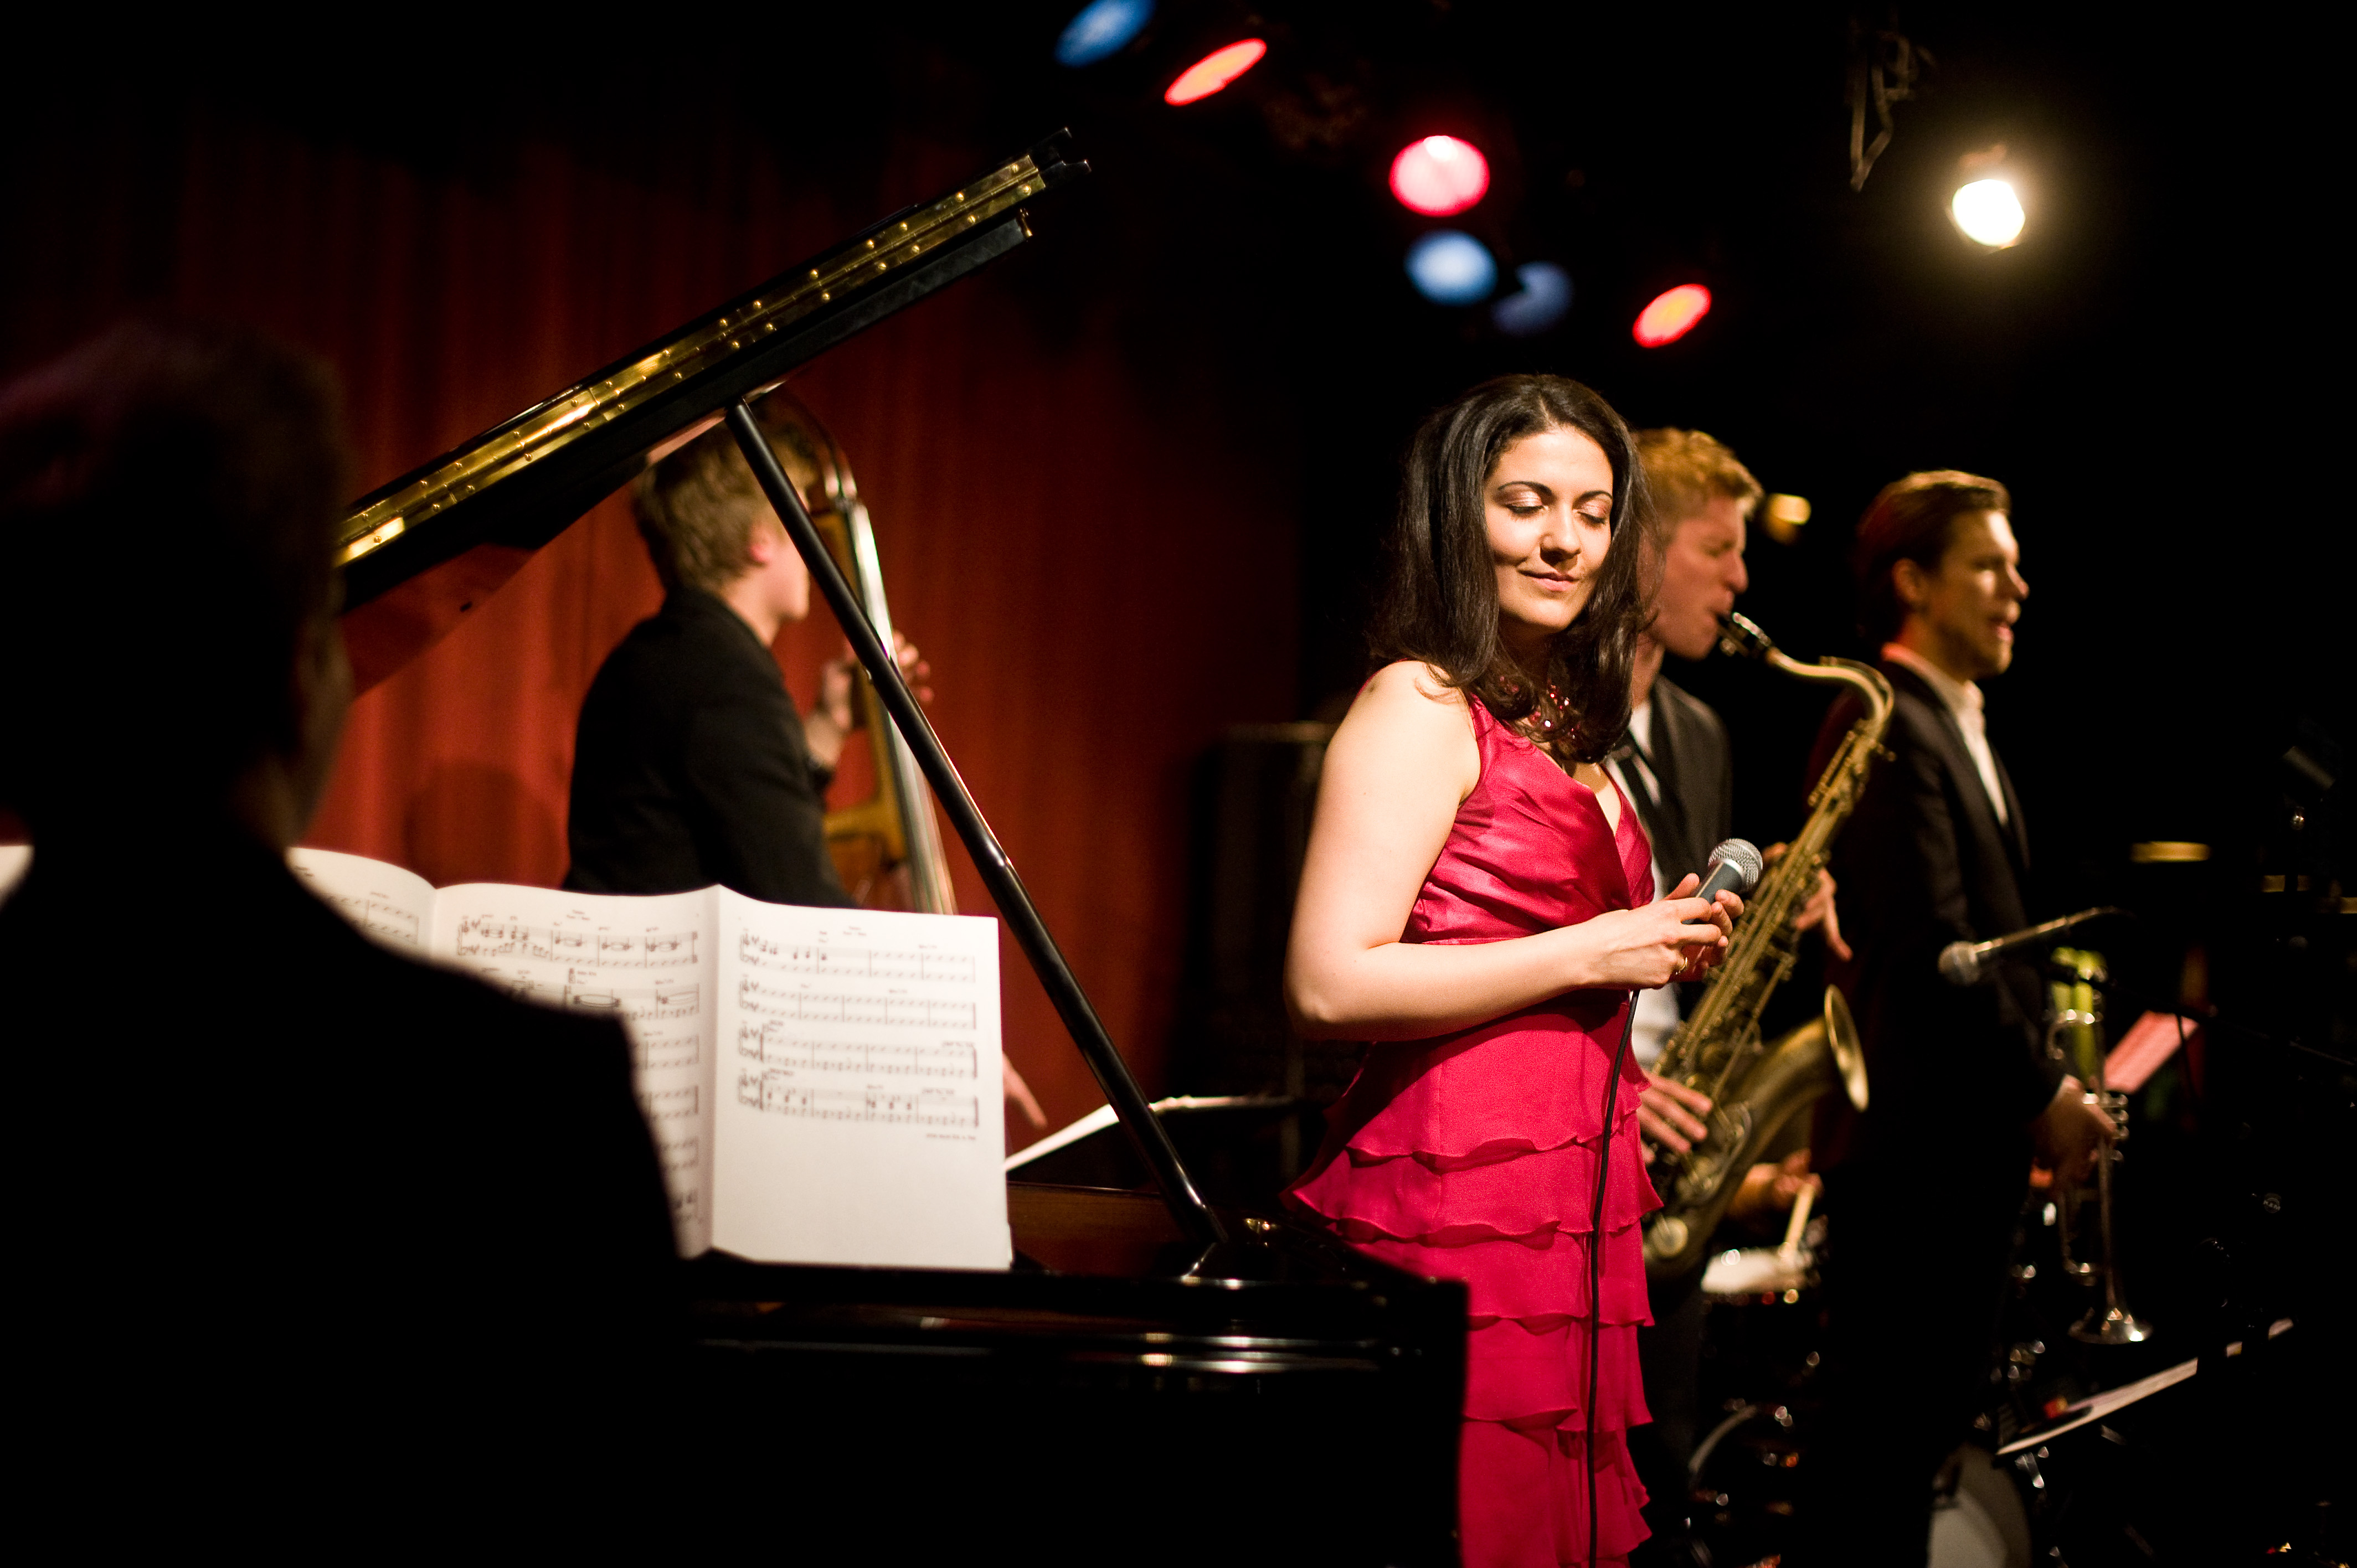 Album Release at Jazz Club Fasching